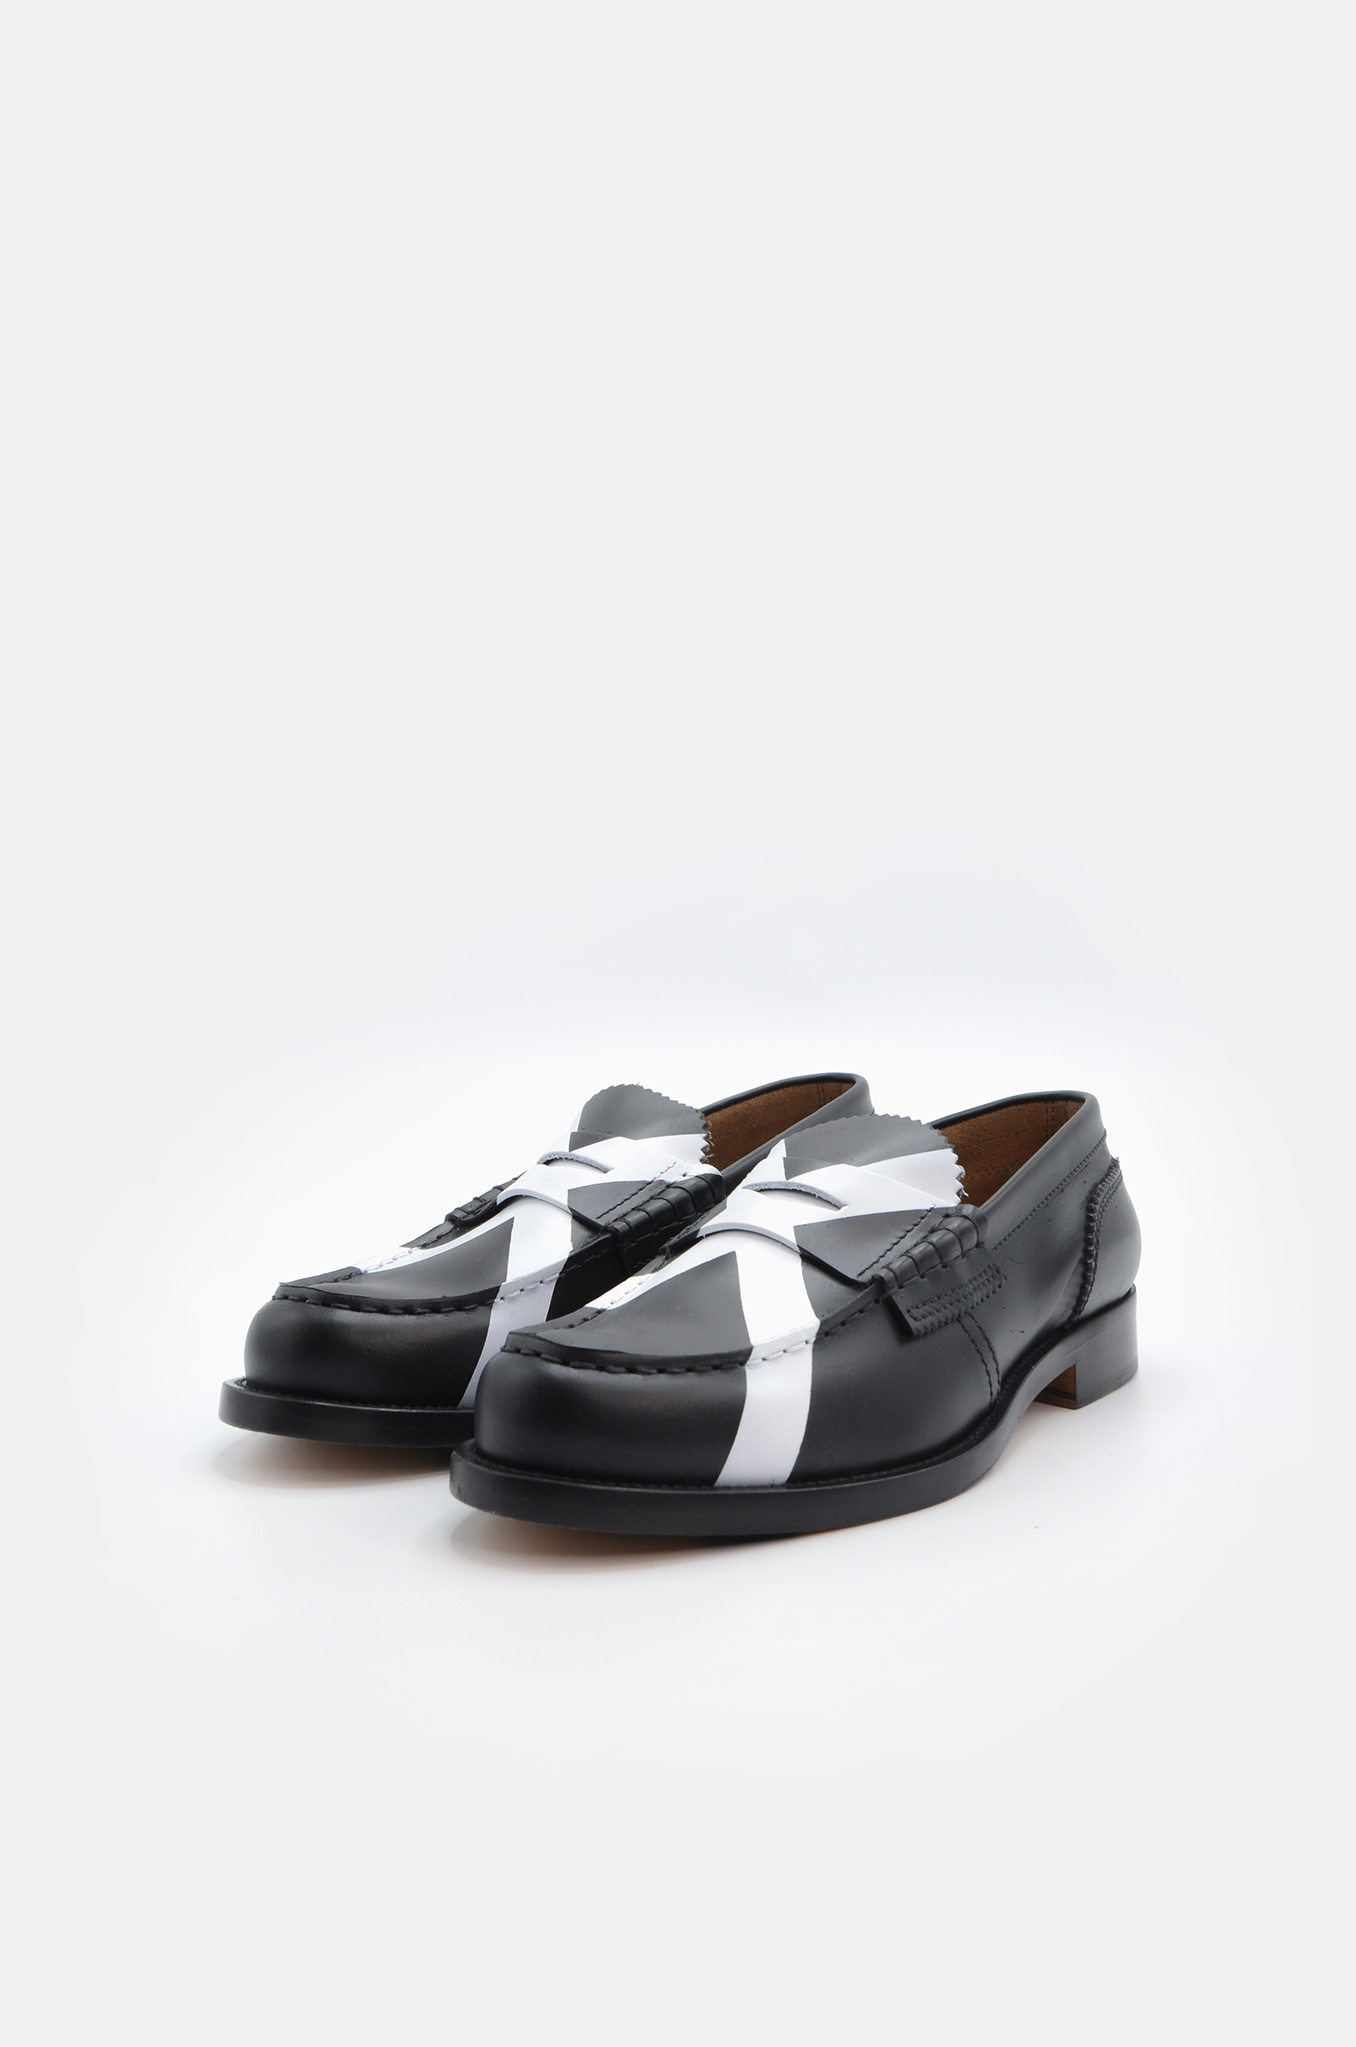 PENNY LOAFER IN BLACK X WHITE-4